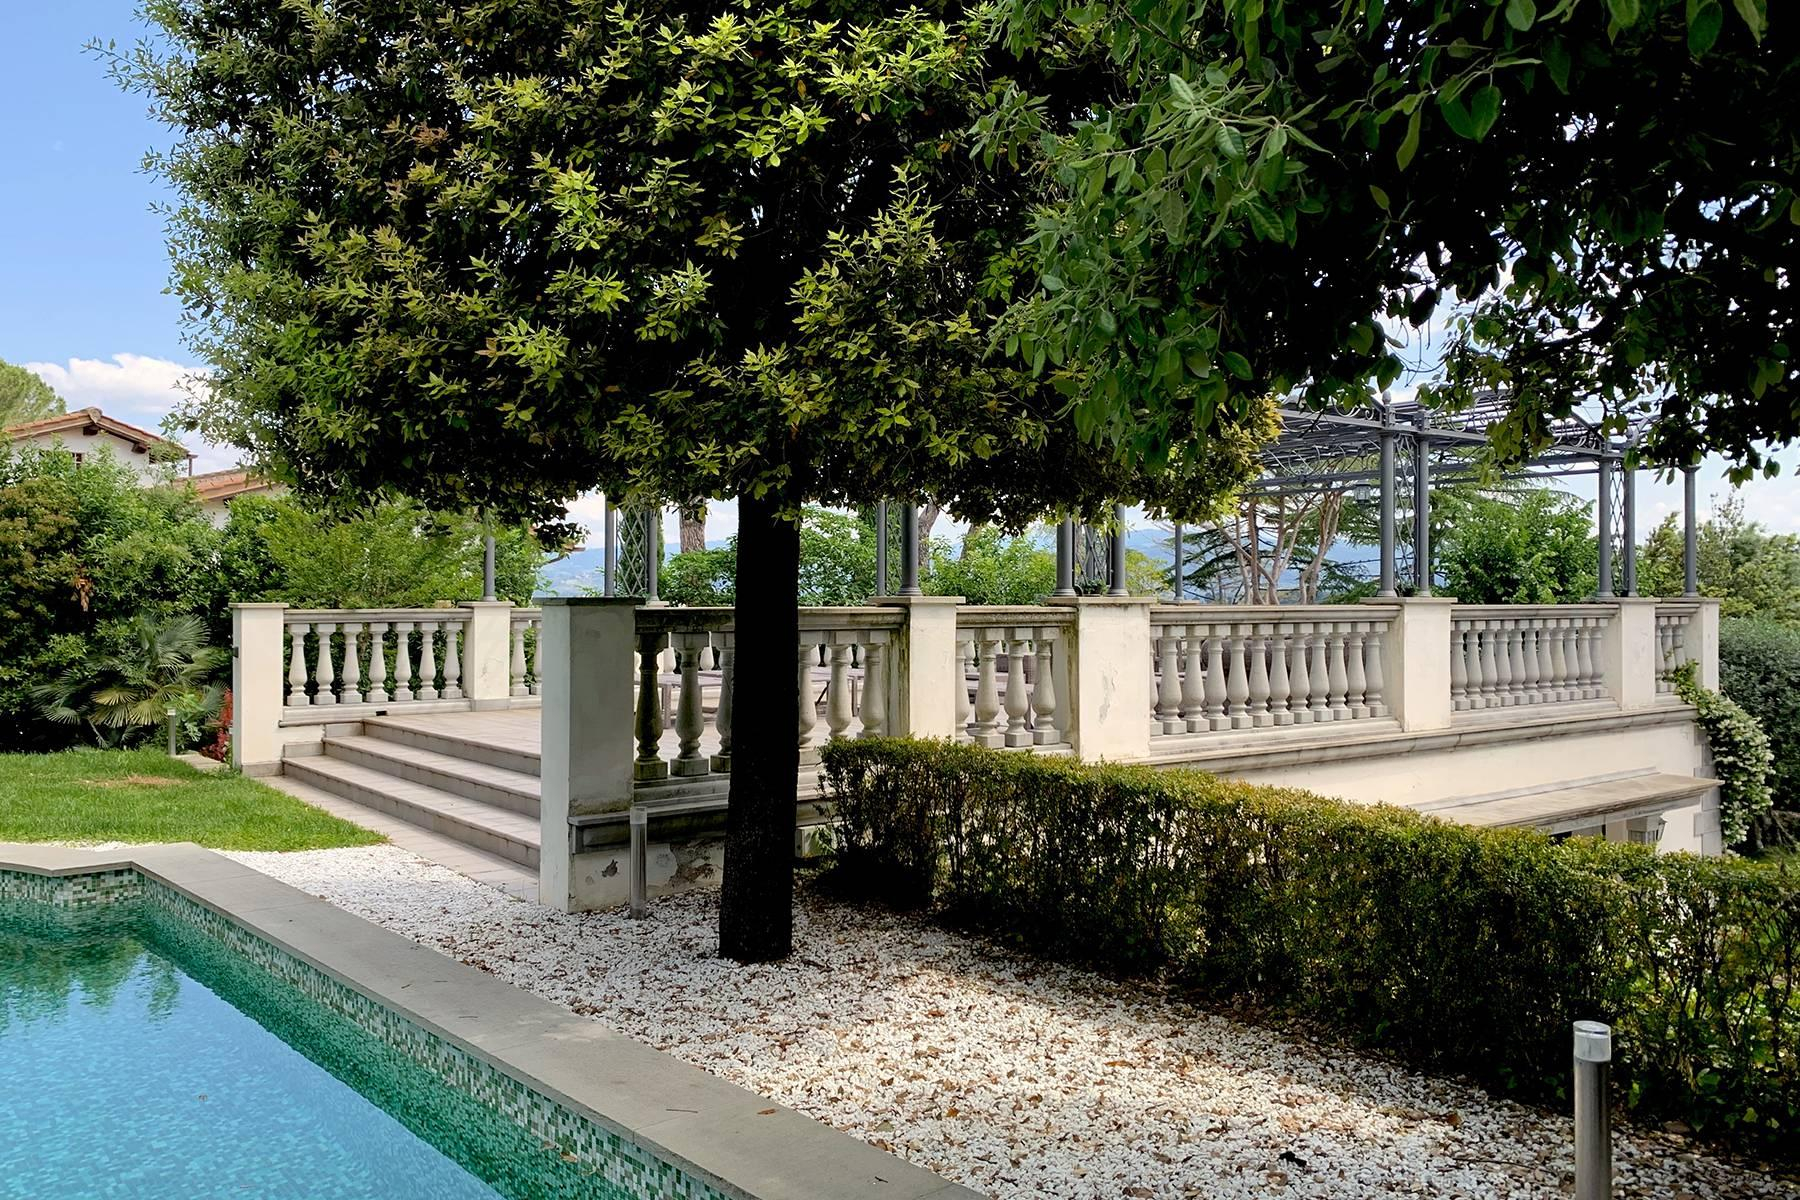 Splendid villa with pool on the Pian dei Giullari hill in Florence - 8